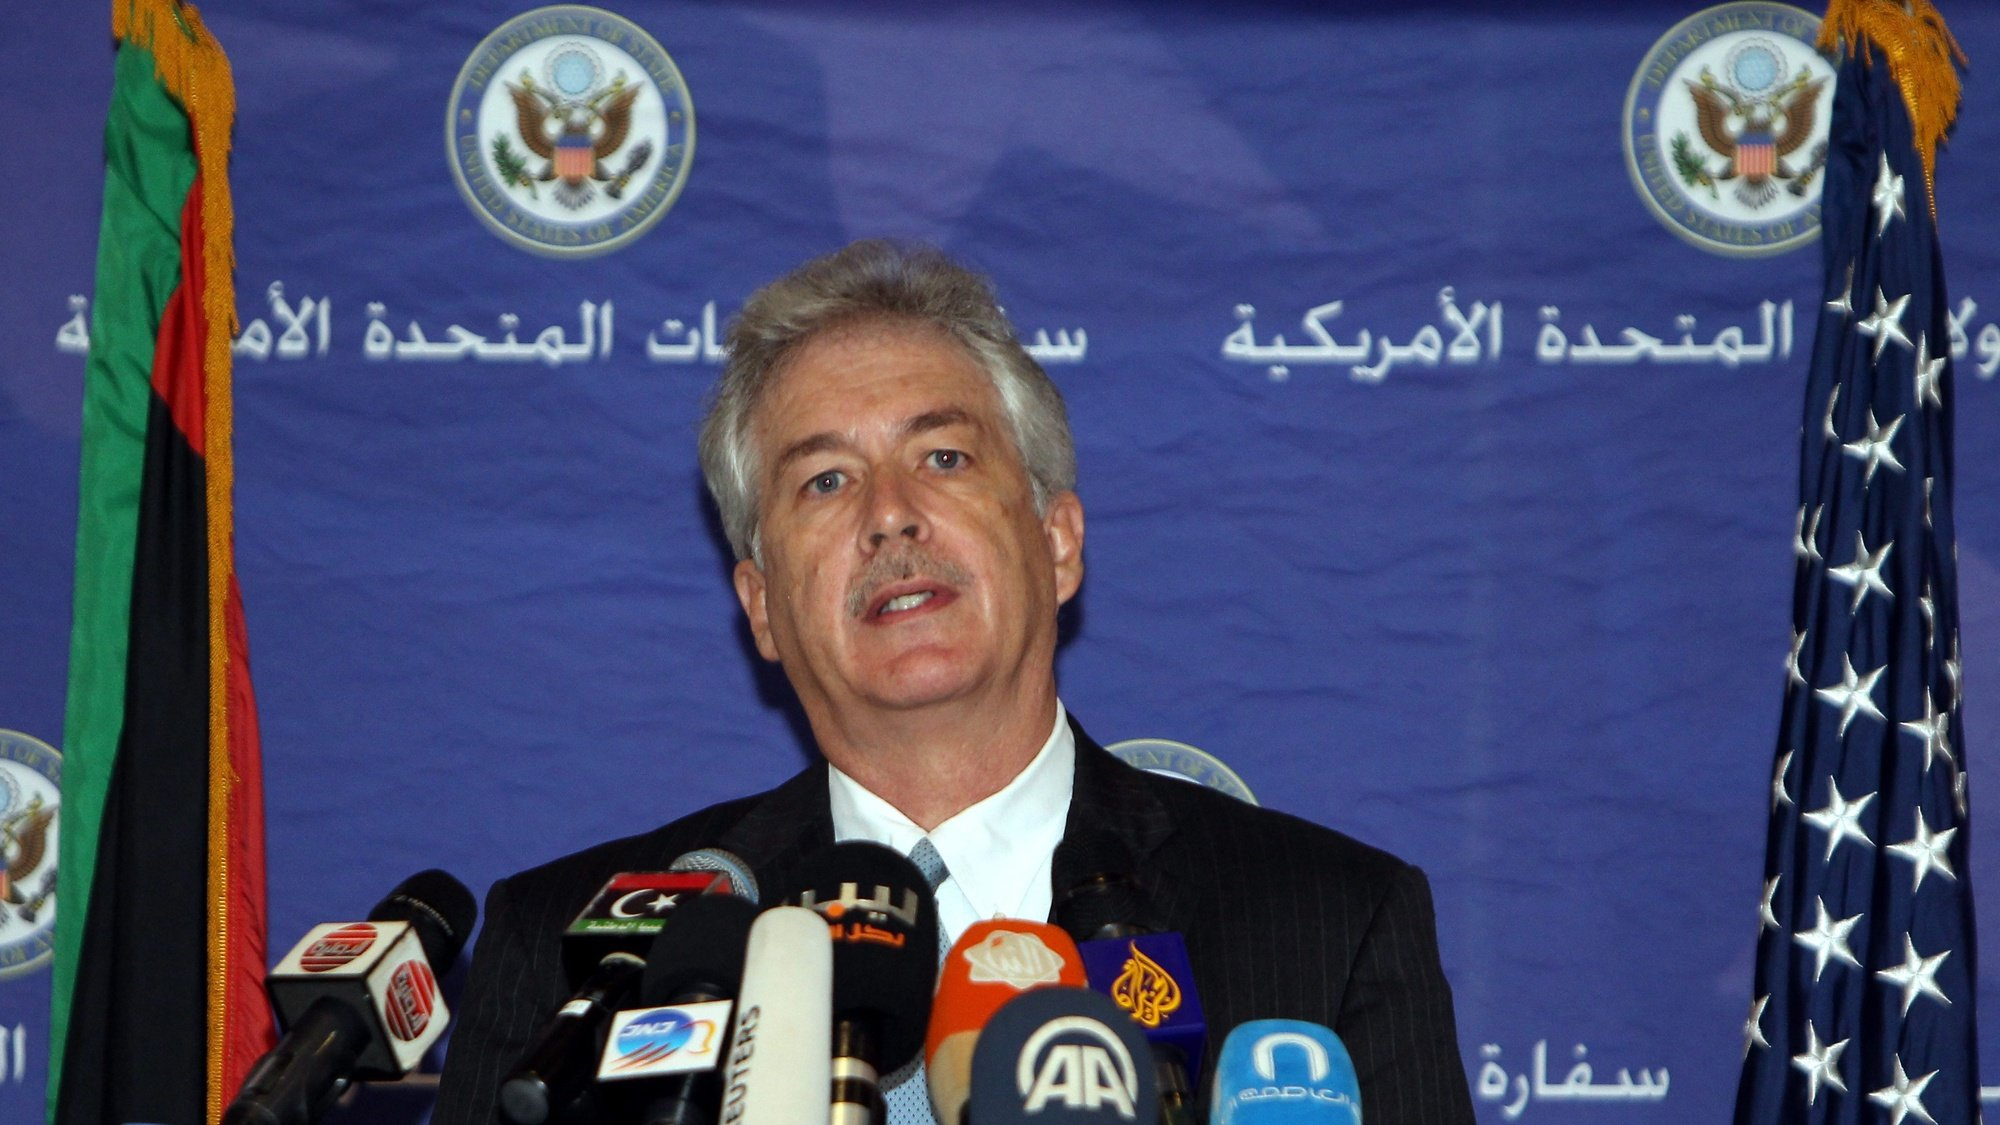 epa04178234 US Deputy Secretary of State William Burns speaks during a press conference in Tripoli, Libya, 24 April 2014. Burns arrived in Libya on 23 April to meet with senior officials. The State Department said the trip reaffirms the US support for the Libyan people as they work to achieve the aspirations of the revolution.  EPA/SABRI ELMHEDWI